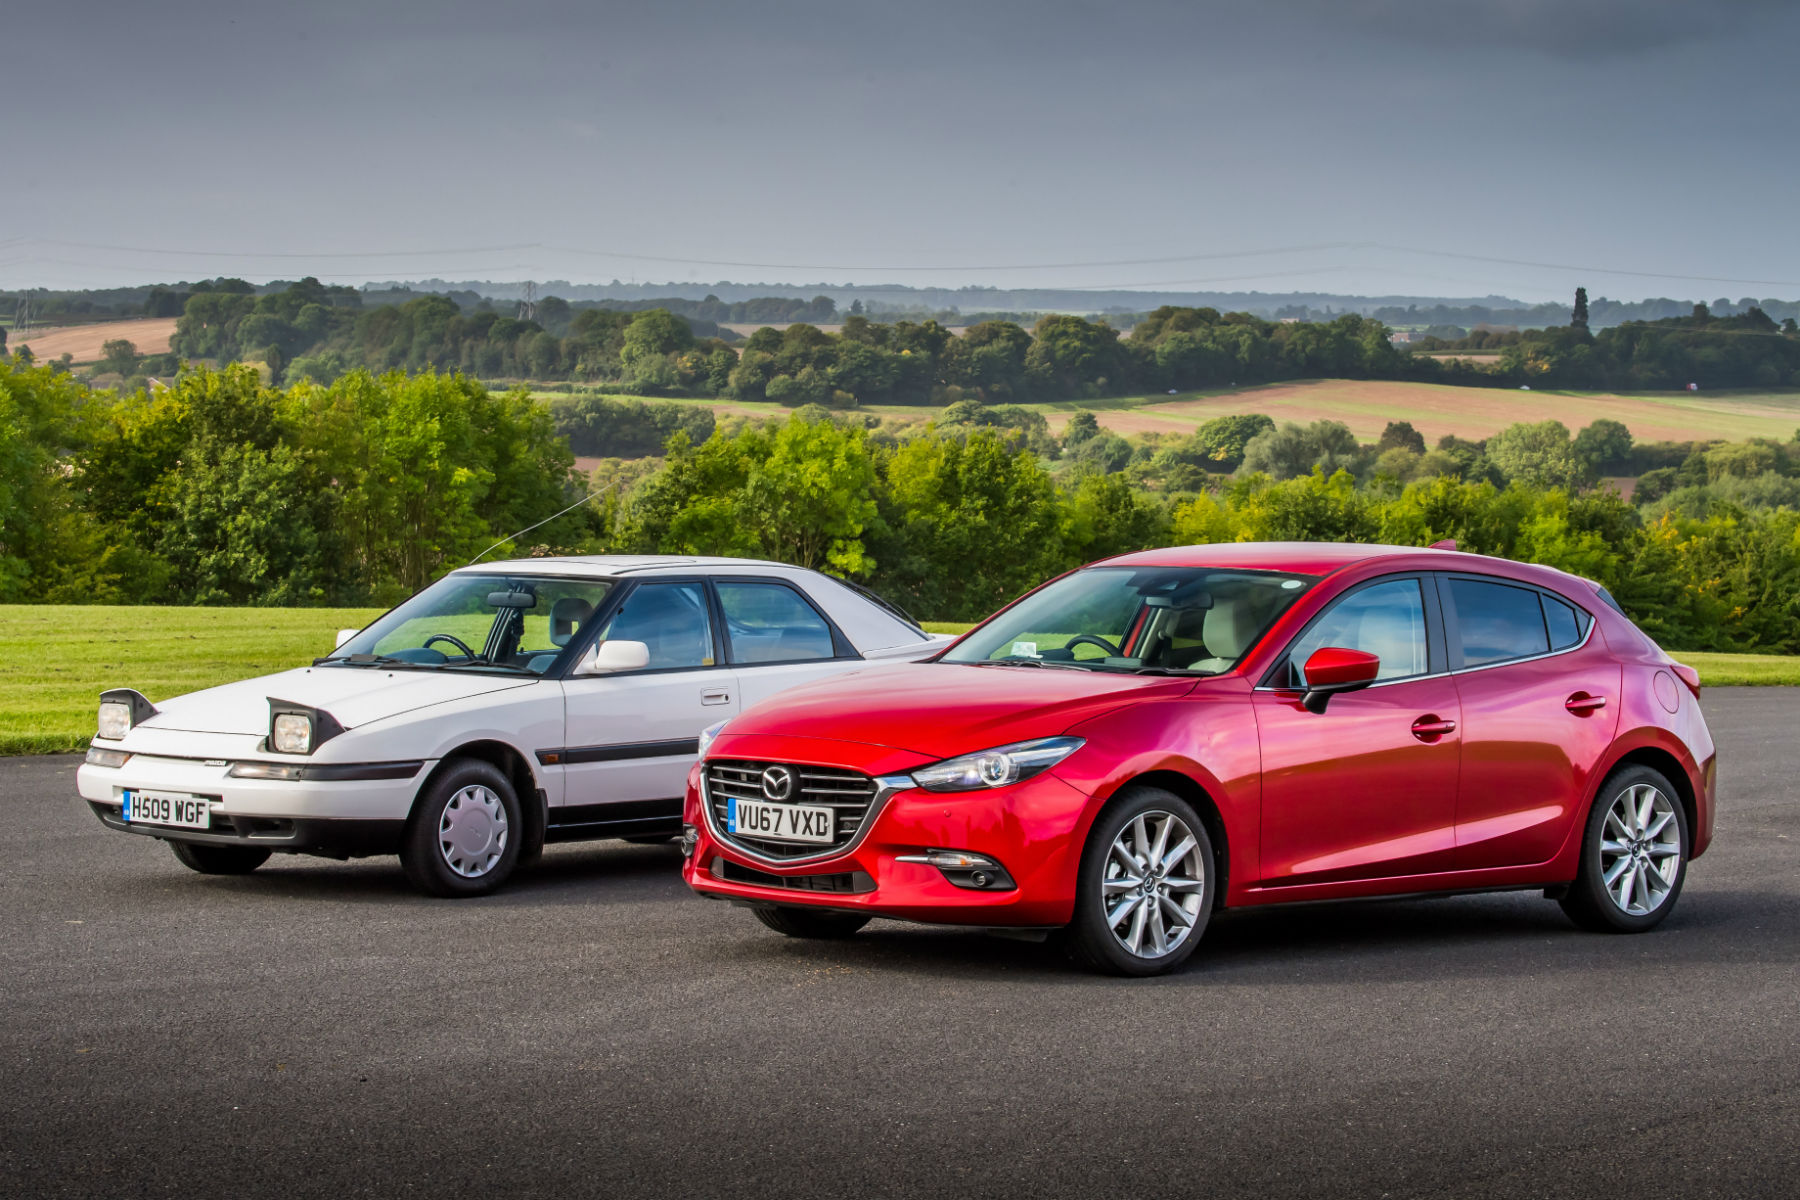 Mazda: save money on any sub-130g/km CO2 model